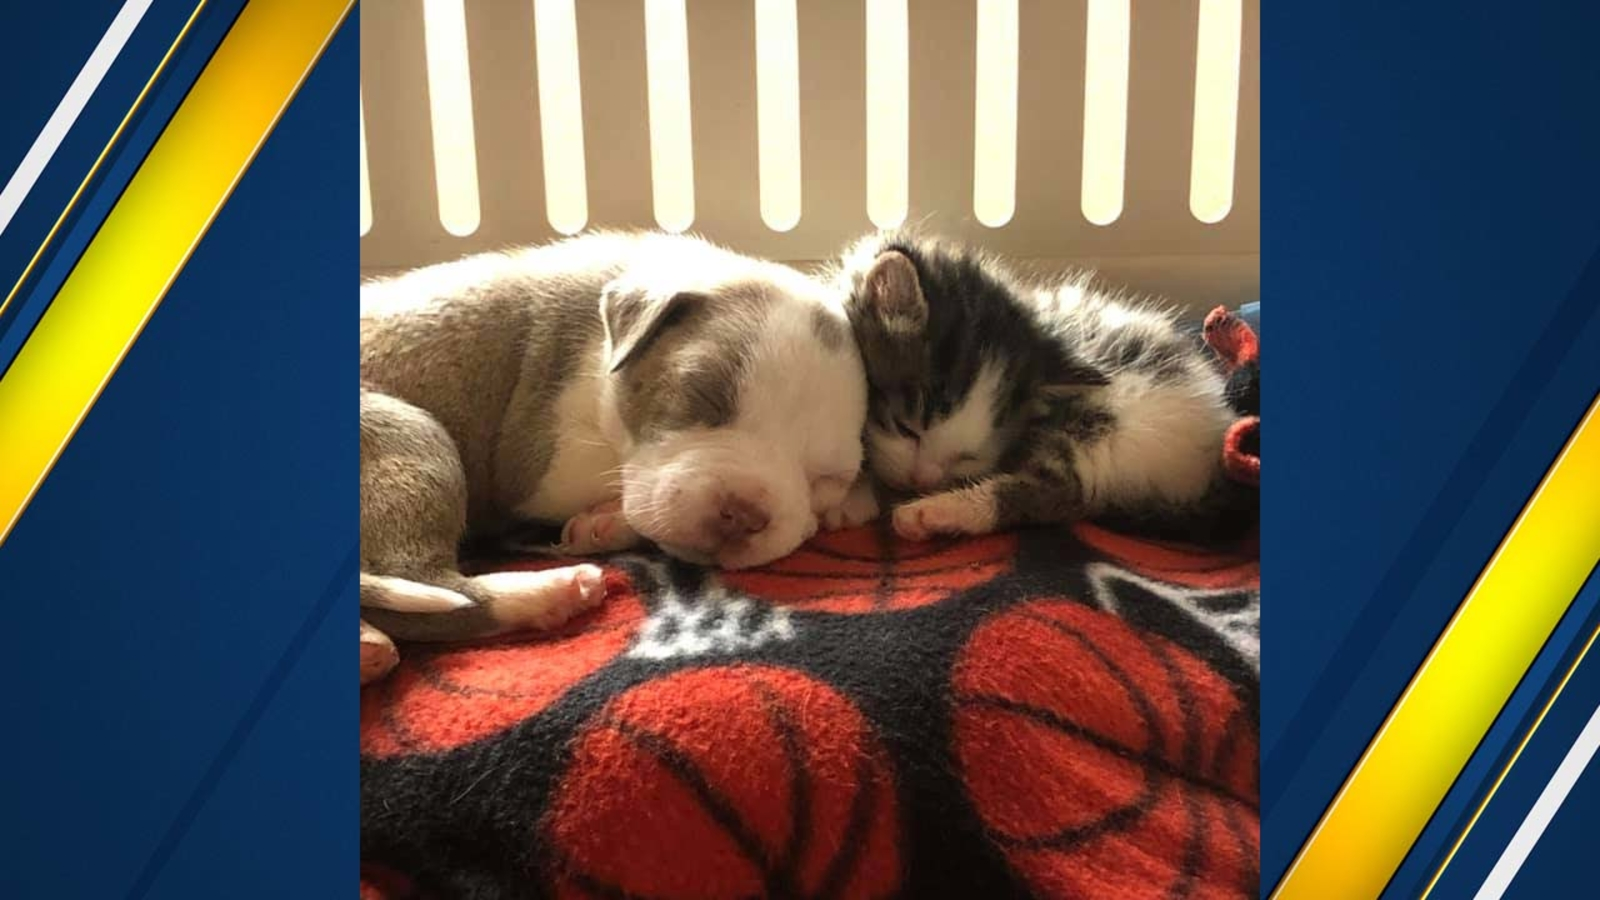 Fresno Humane looking for donations to help inseparable puppy and kitten